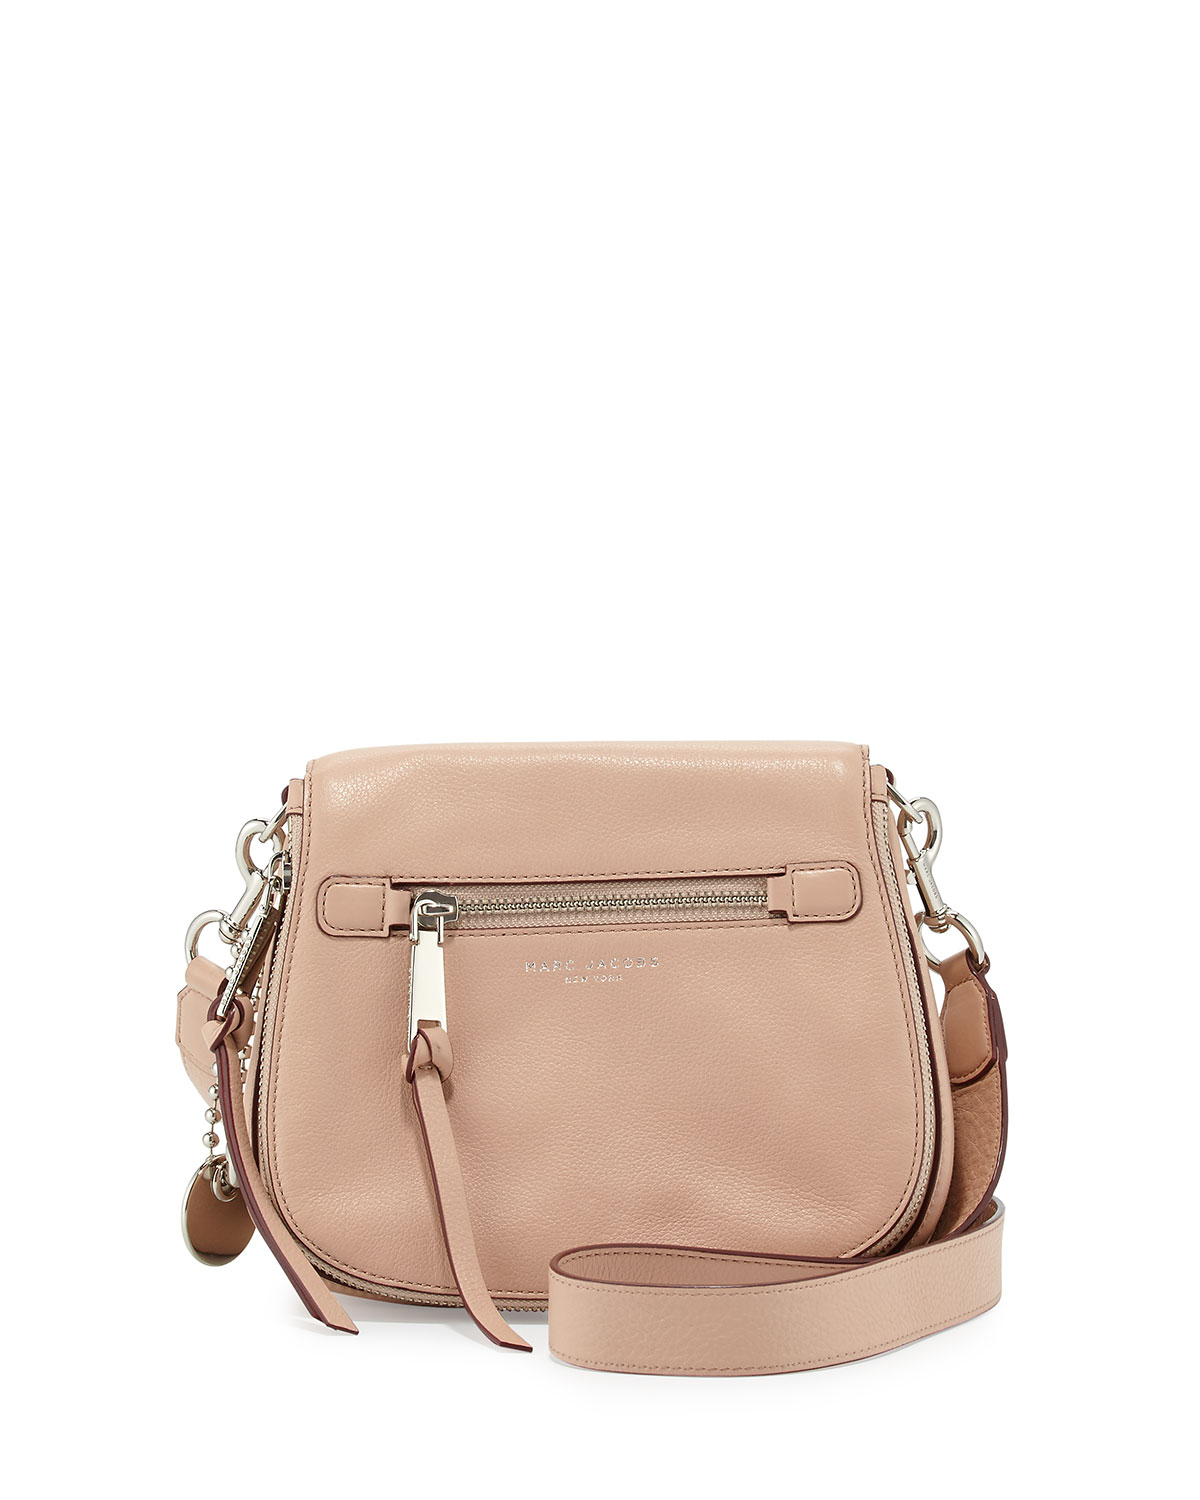 Marc Jacobs Recruit Small Leather Saddle Bag, Nude   Neiman Marcus e19ade239c